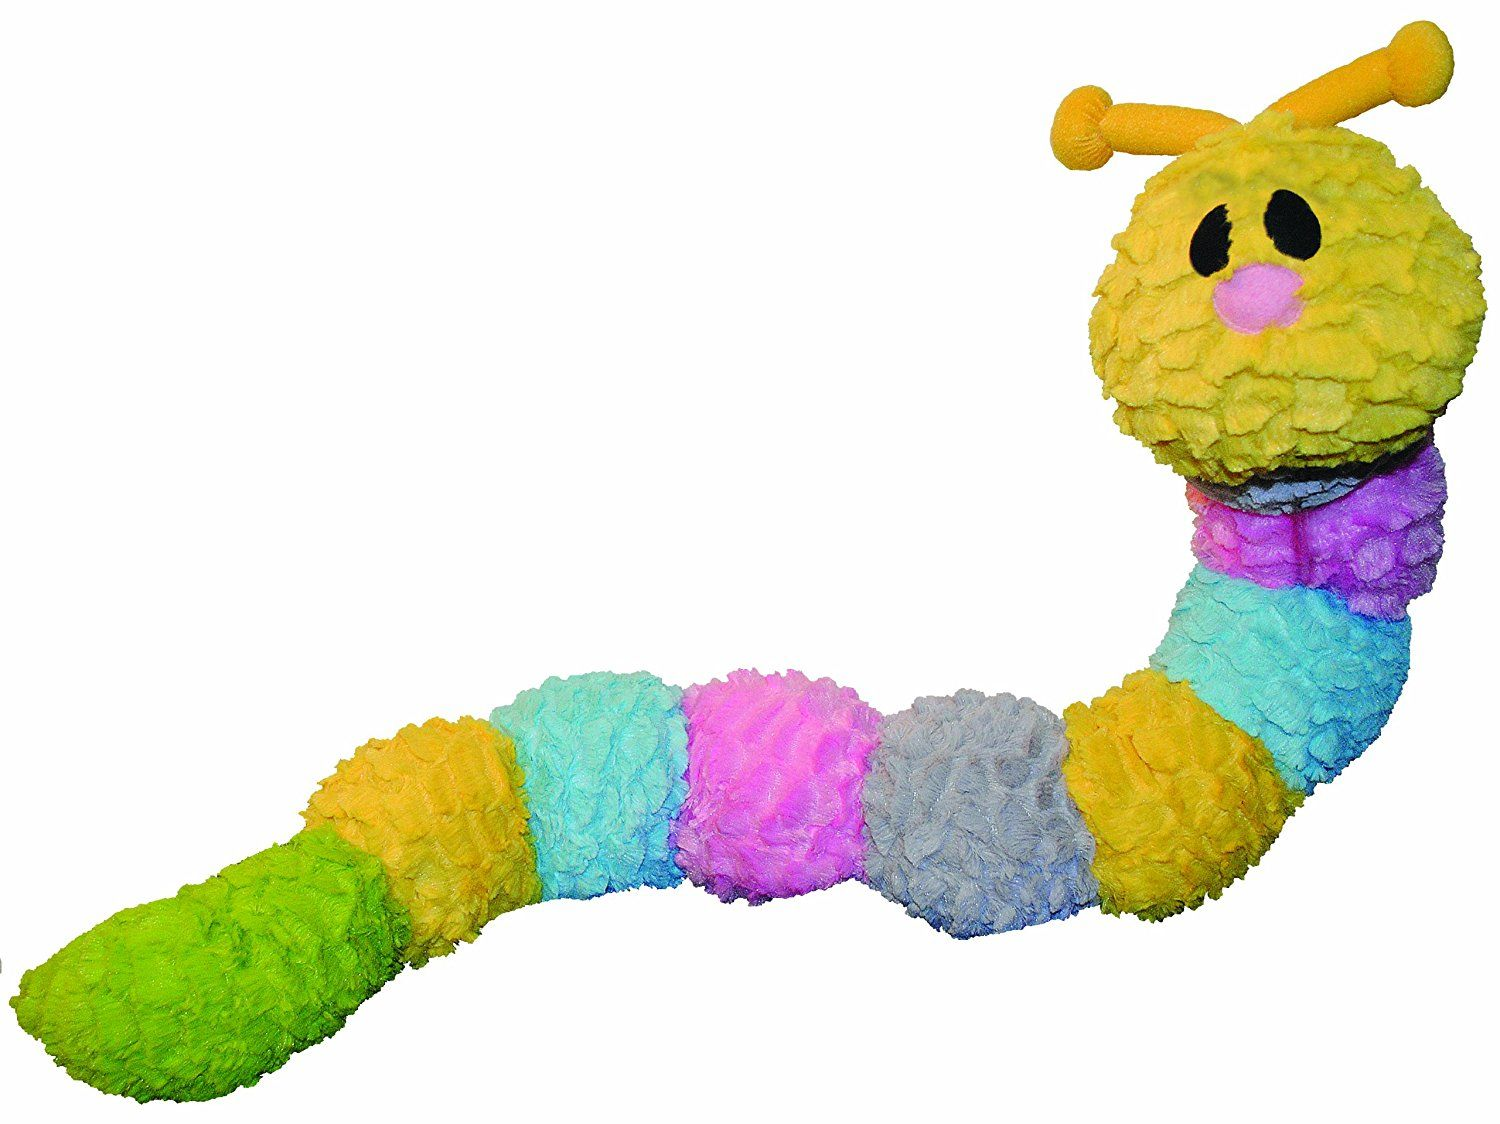 35 Caterpillar Dog Toy From Patchwork New And Awesome Dog